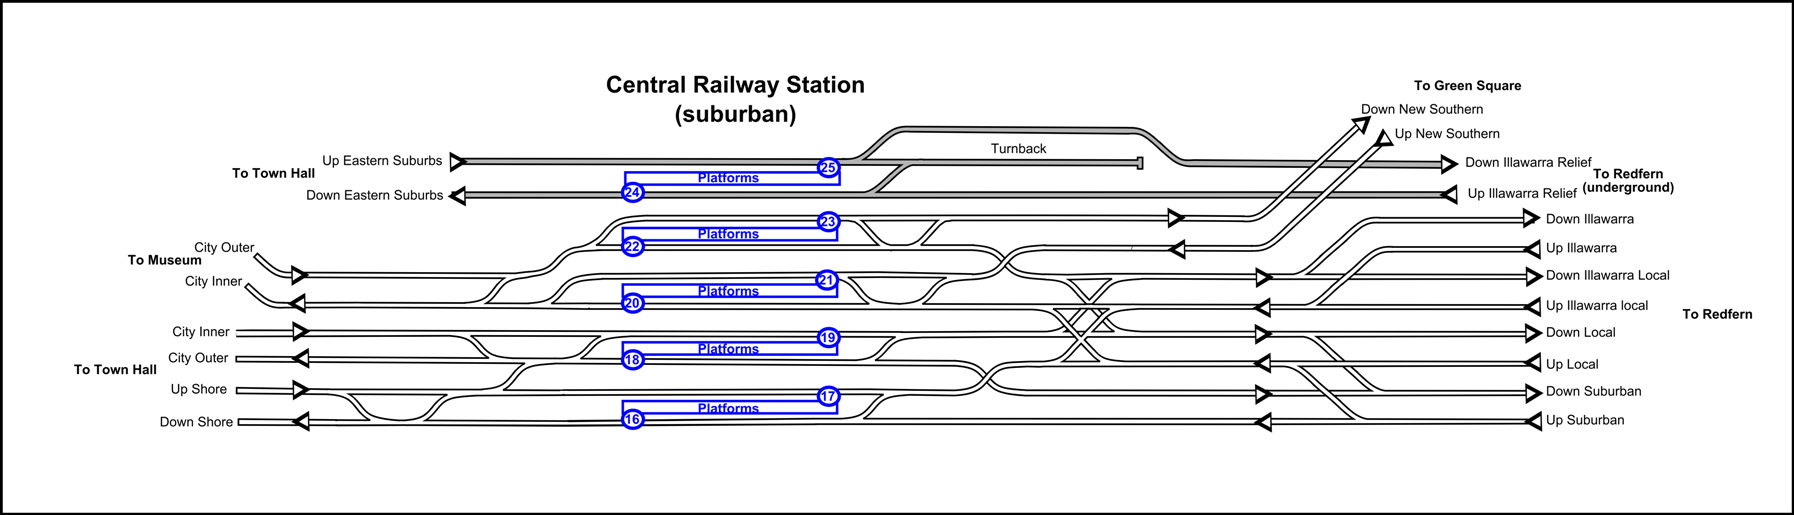 More Railway Track Dimensions